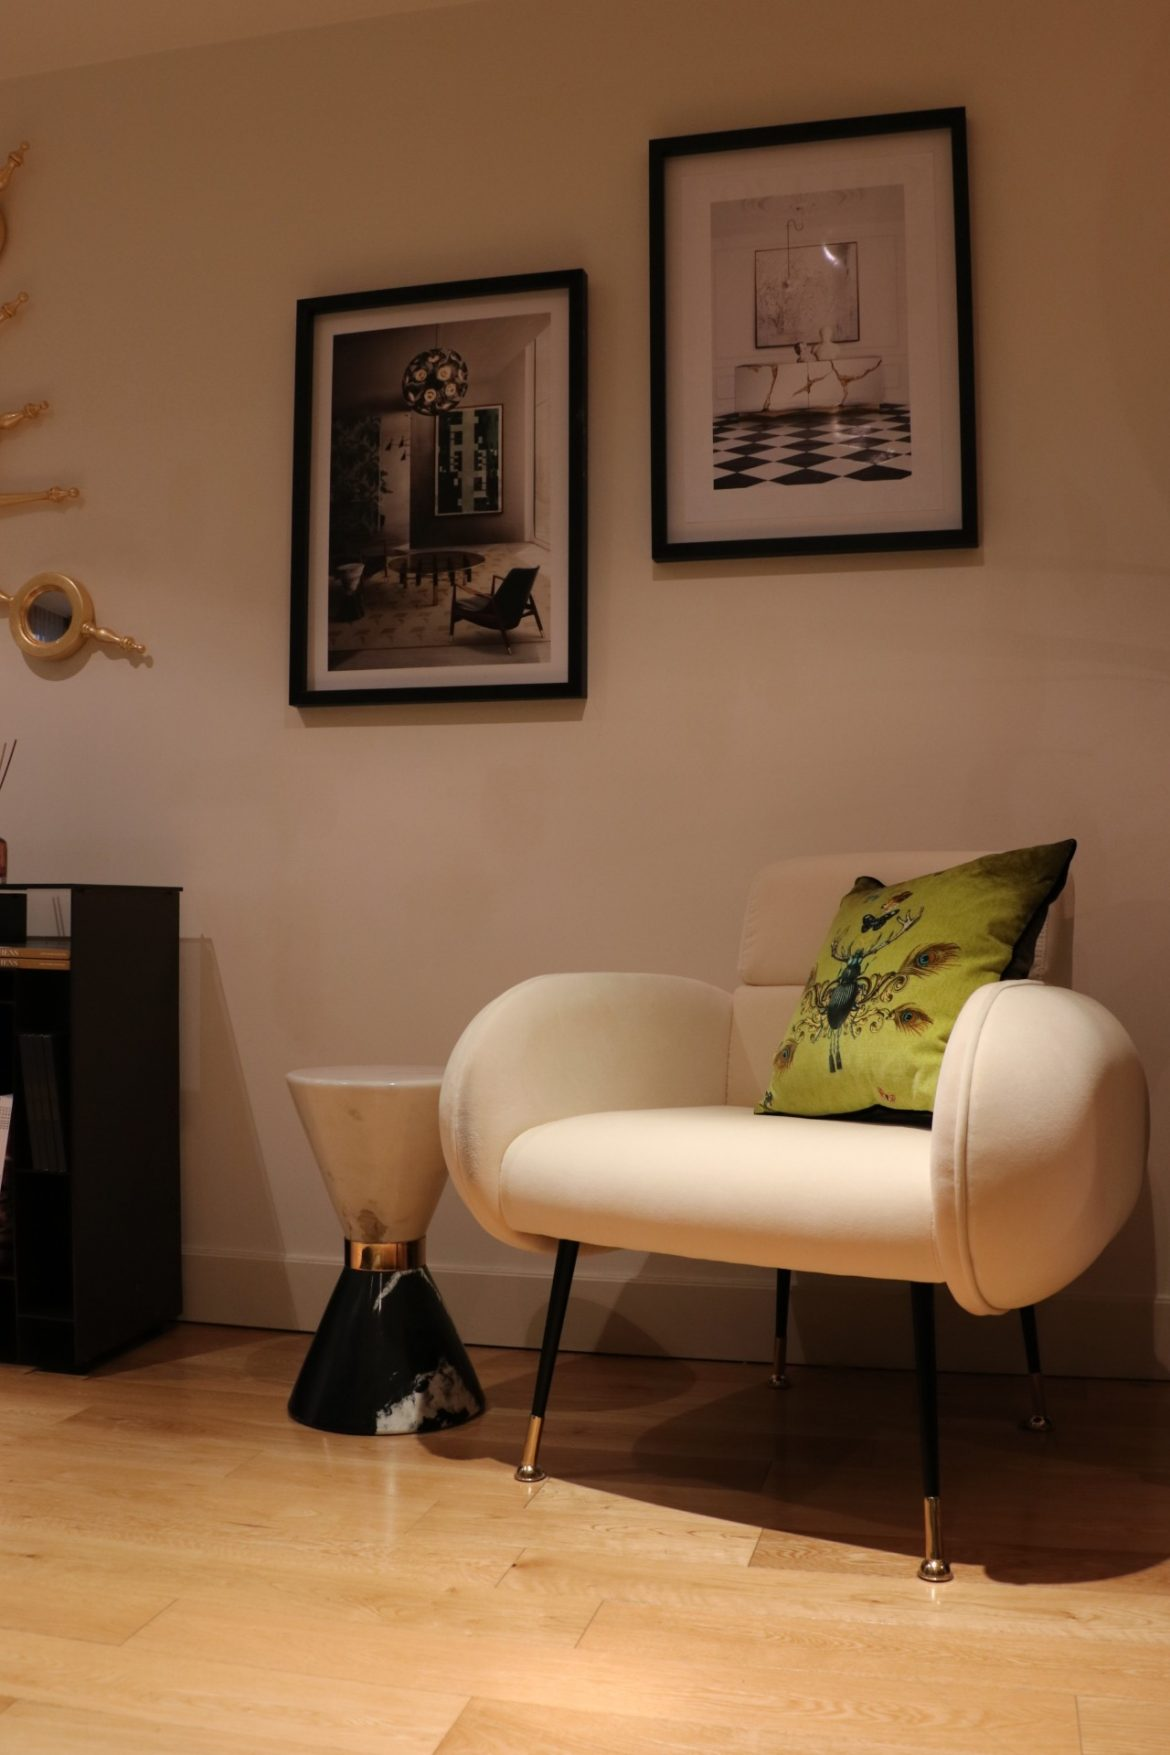 Covet London: Be Inspired By The Most Amazing Furniture Pieces covet london Covet London: Be Inspired By The Most Amazing Furniture Pieces covet london inspired amazing furniture pieces 4